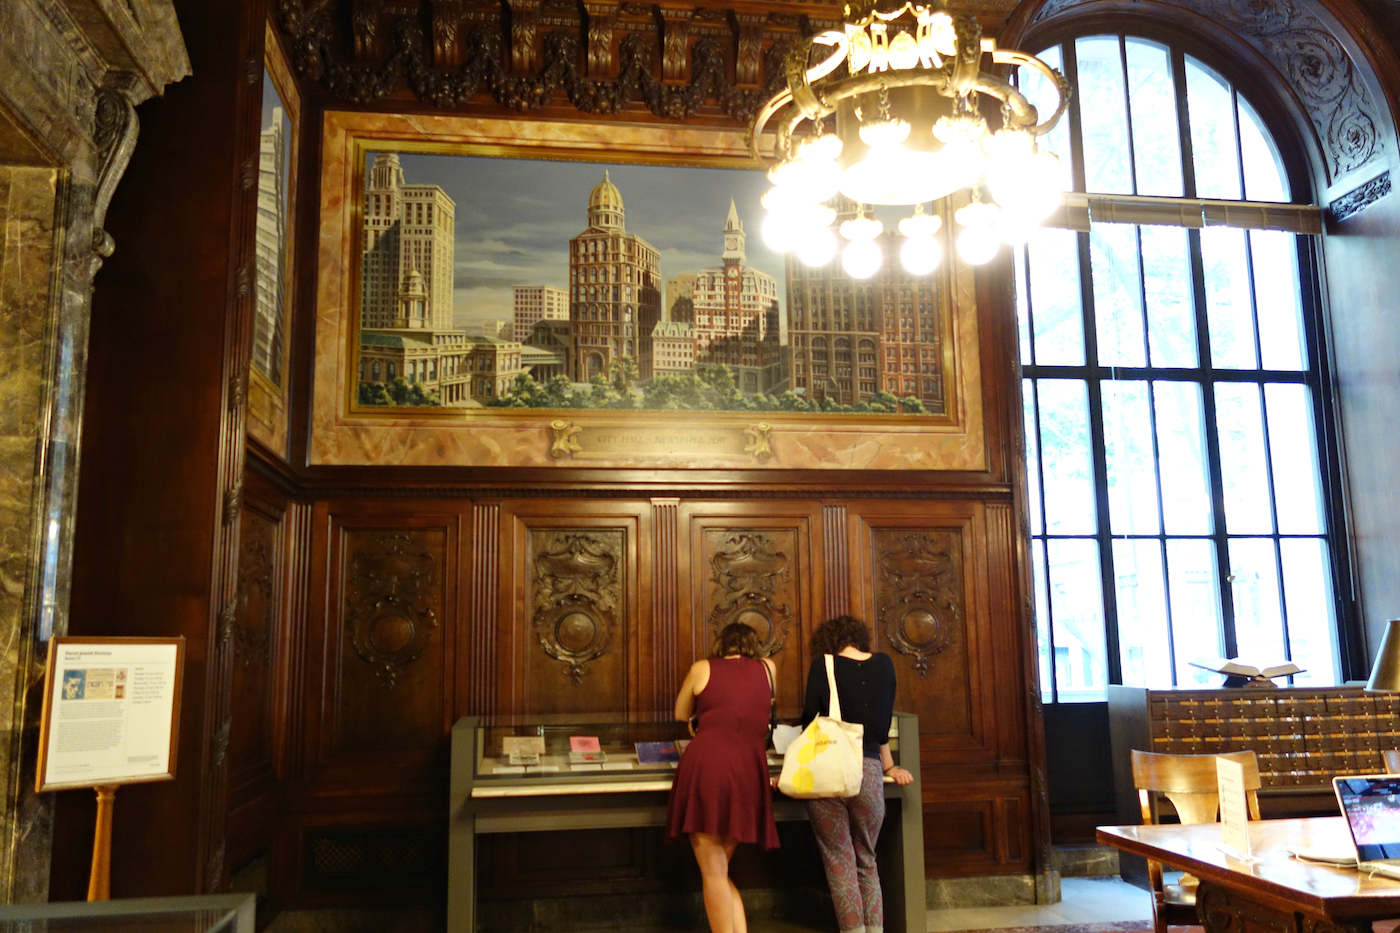 Installation view of 'Protests in Print' at the New York Public Library (photo by the author for Hyperallergic)